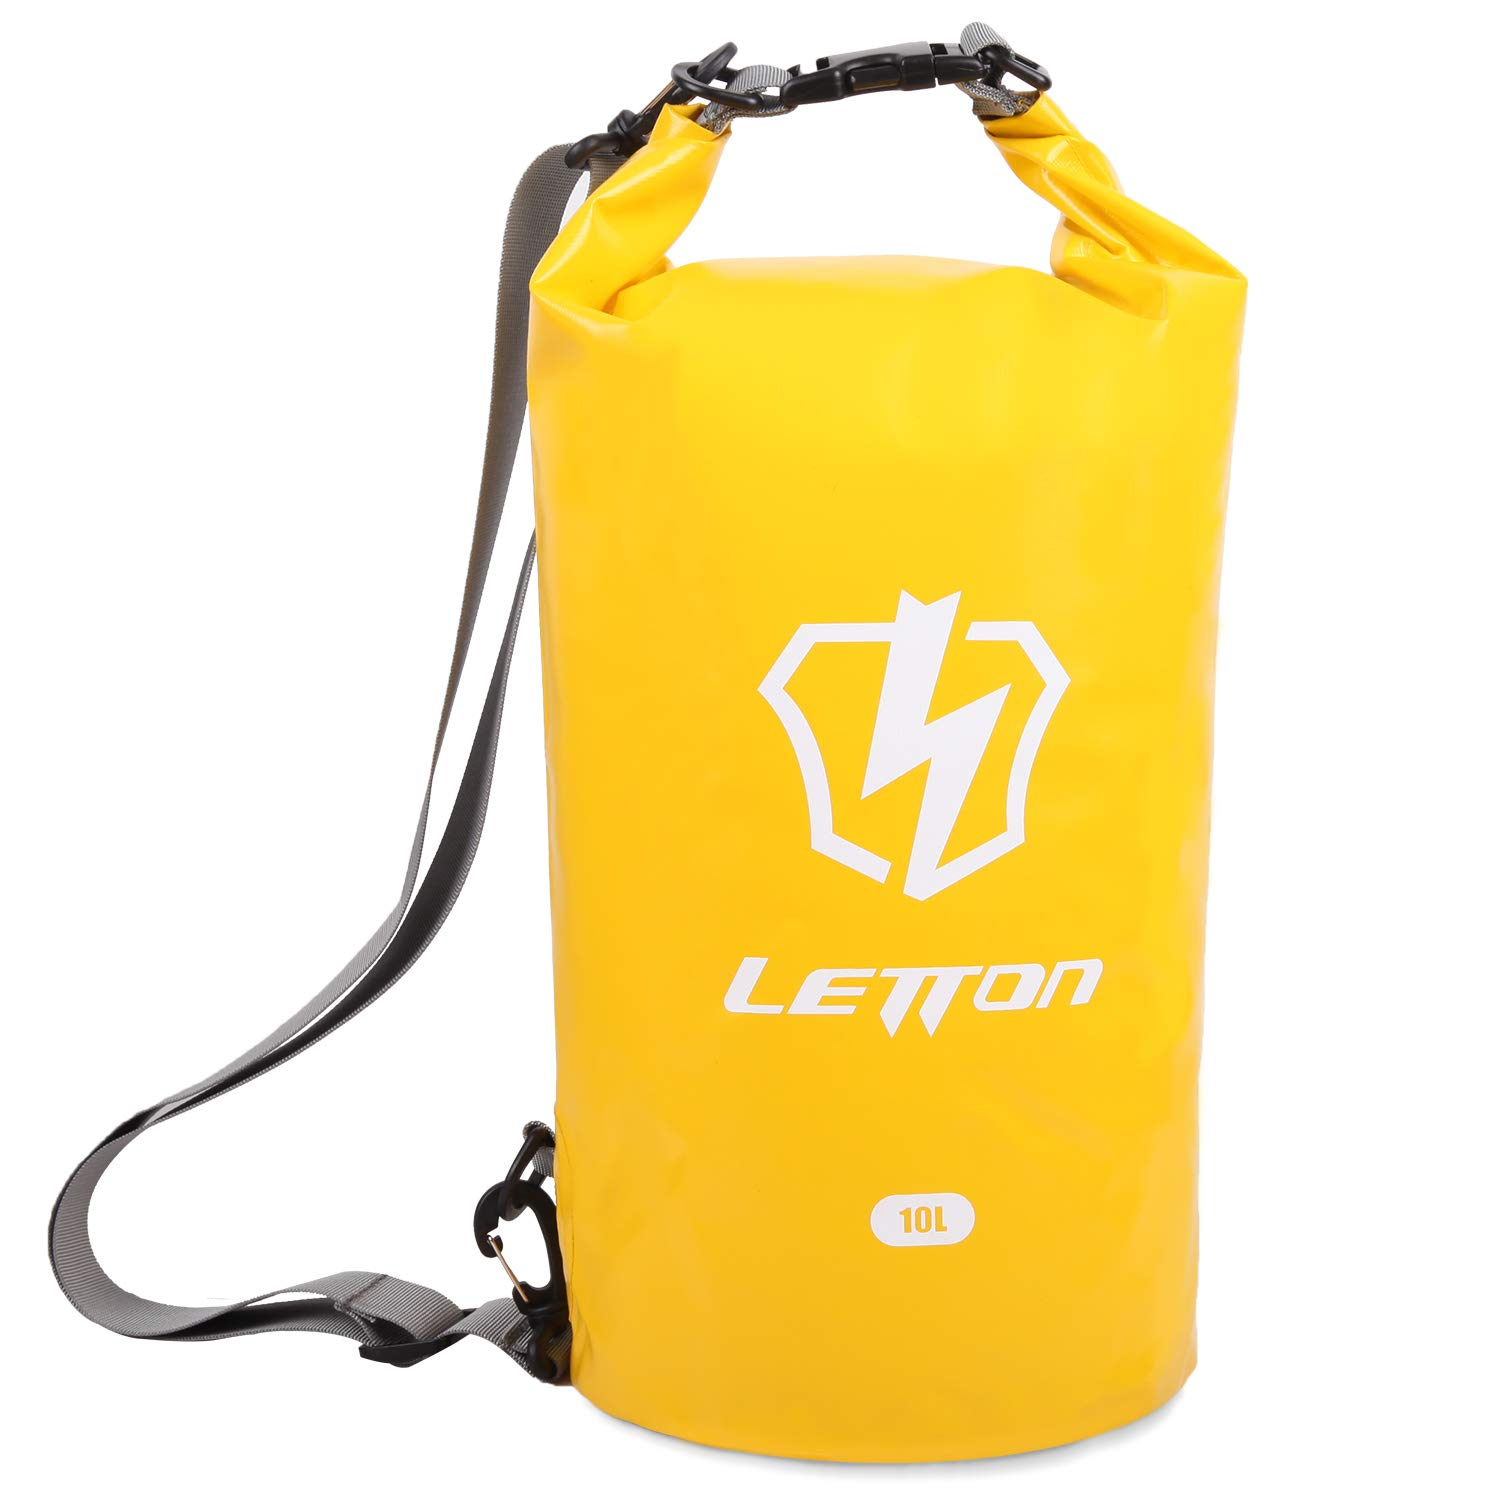 LETTON Waterproof Dry Bag,Floating and Roll Top Sack Keeps Gear Dry with Adjustable Shoulder Strap for Kayaking,Boating,Surfing,Fishing,Swimming,Rafting,Hiking,Beach-10L